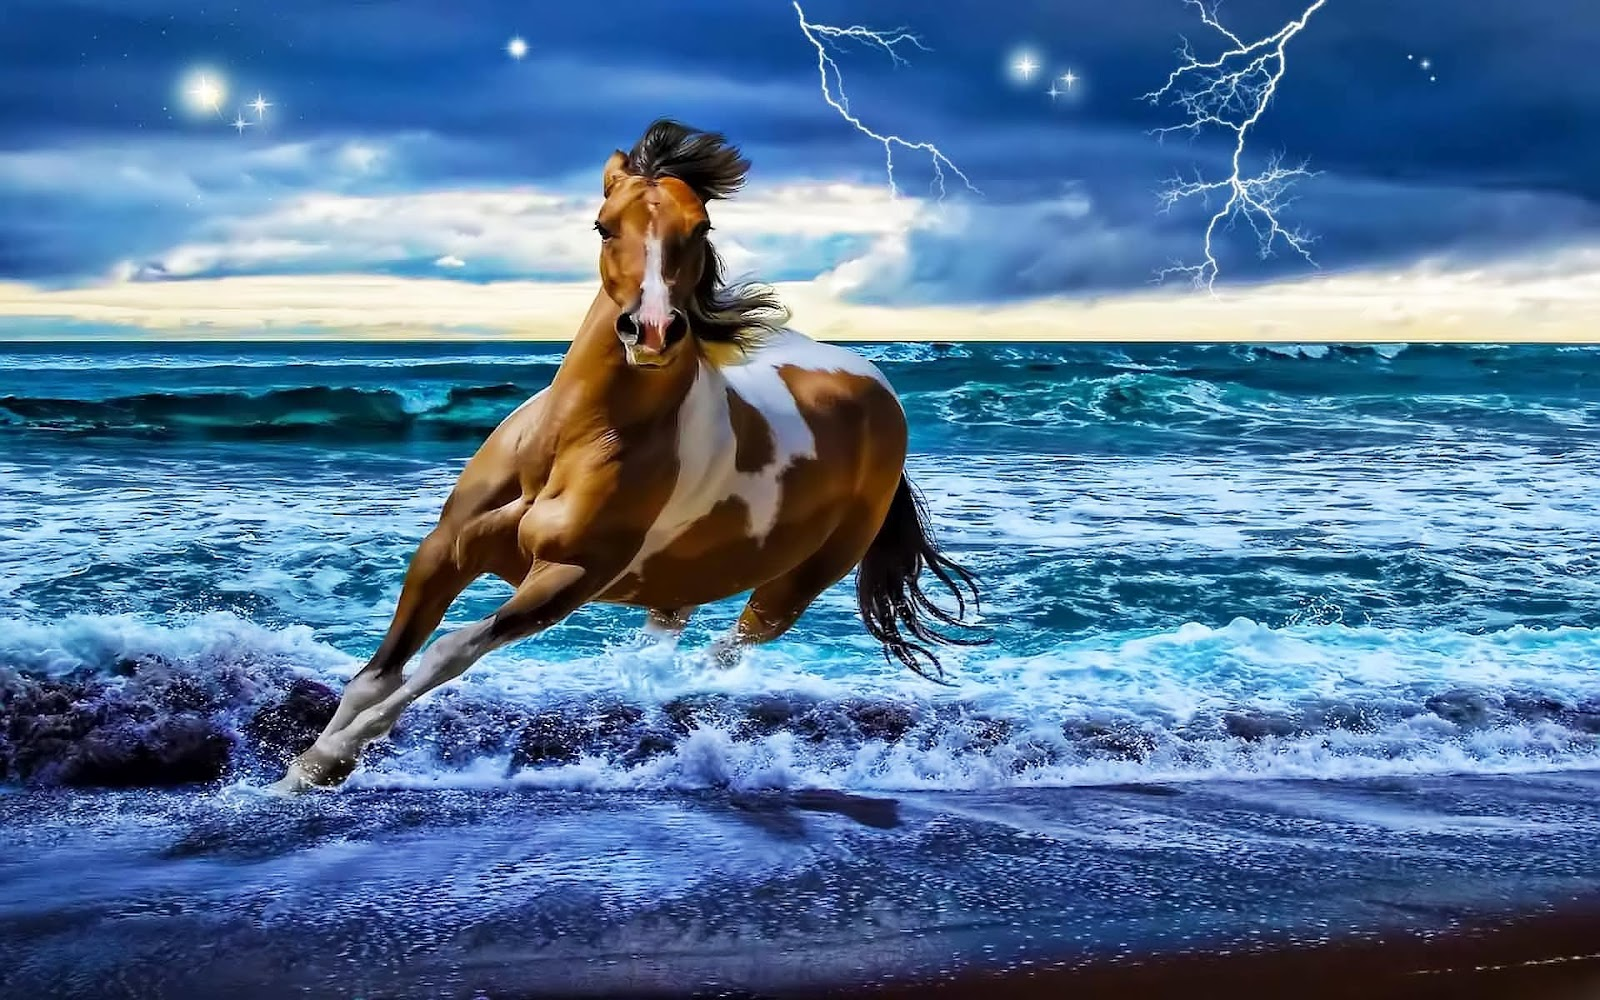 Water horse wallpaper - photo#12